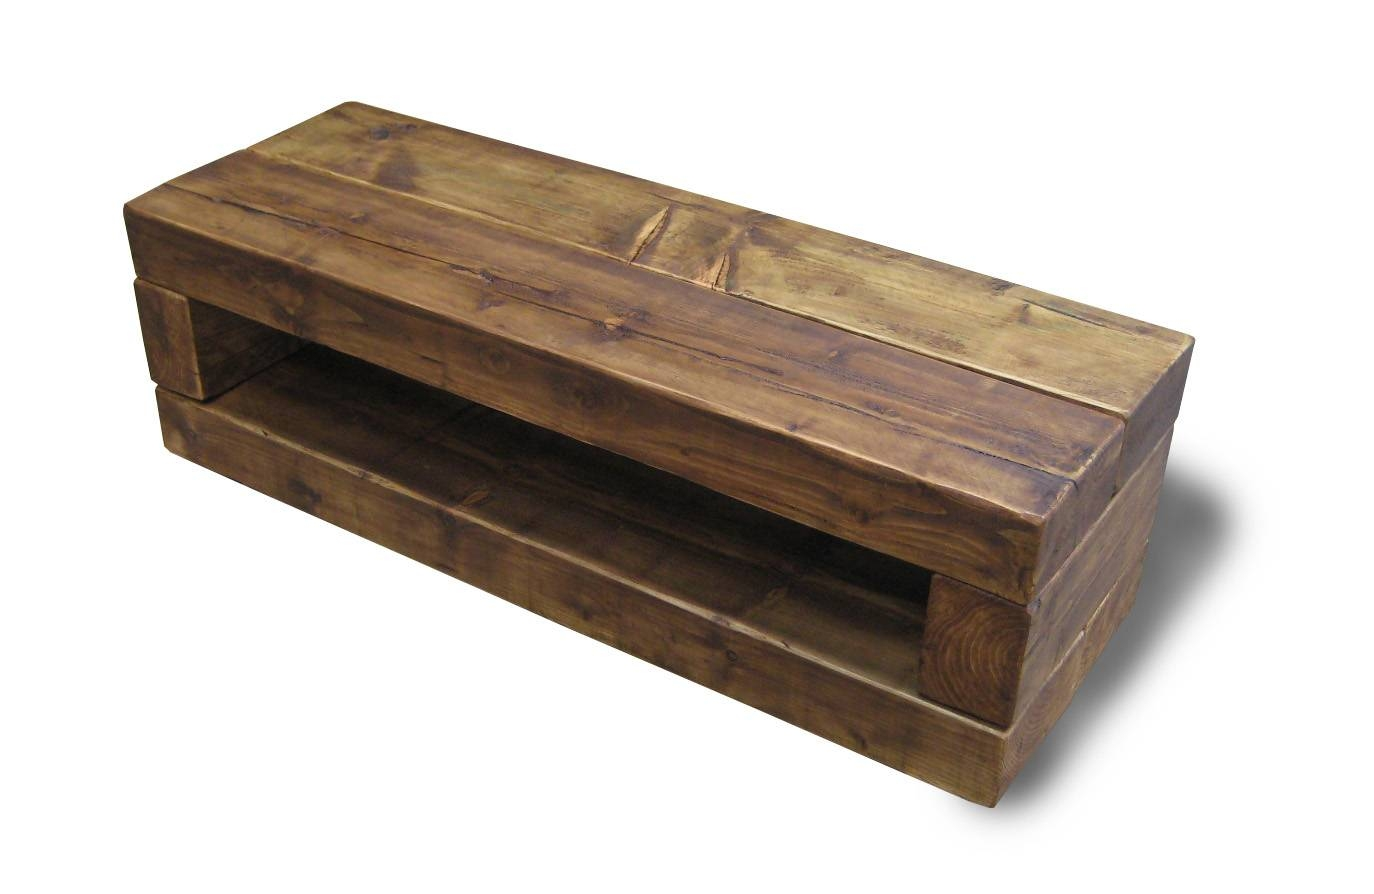 Bench. Solid Wood Tv Bench: Chunky Stretch Tv Stand The Cool Wood throughout Hardwood Tv Stands (Image 1 of 15)